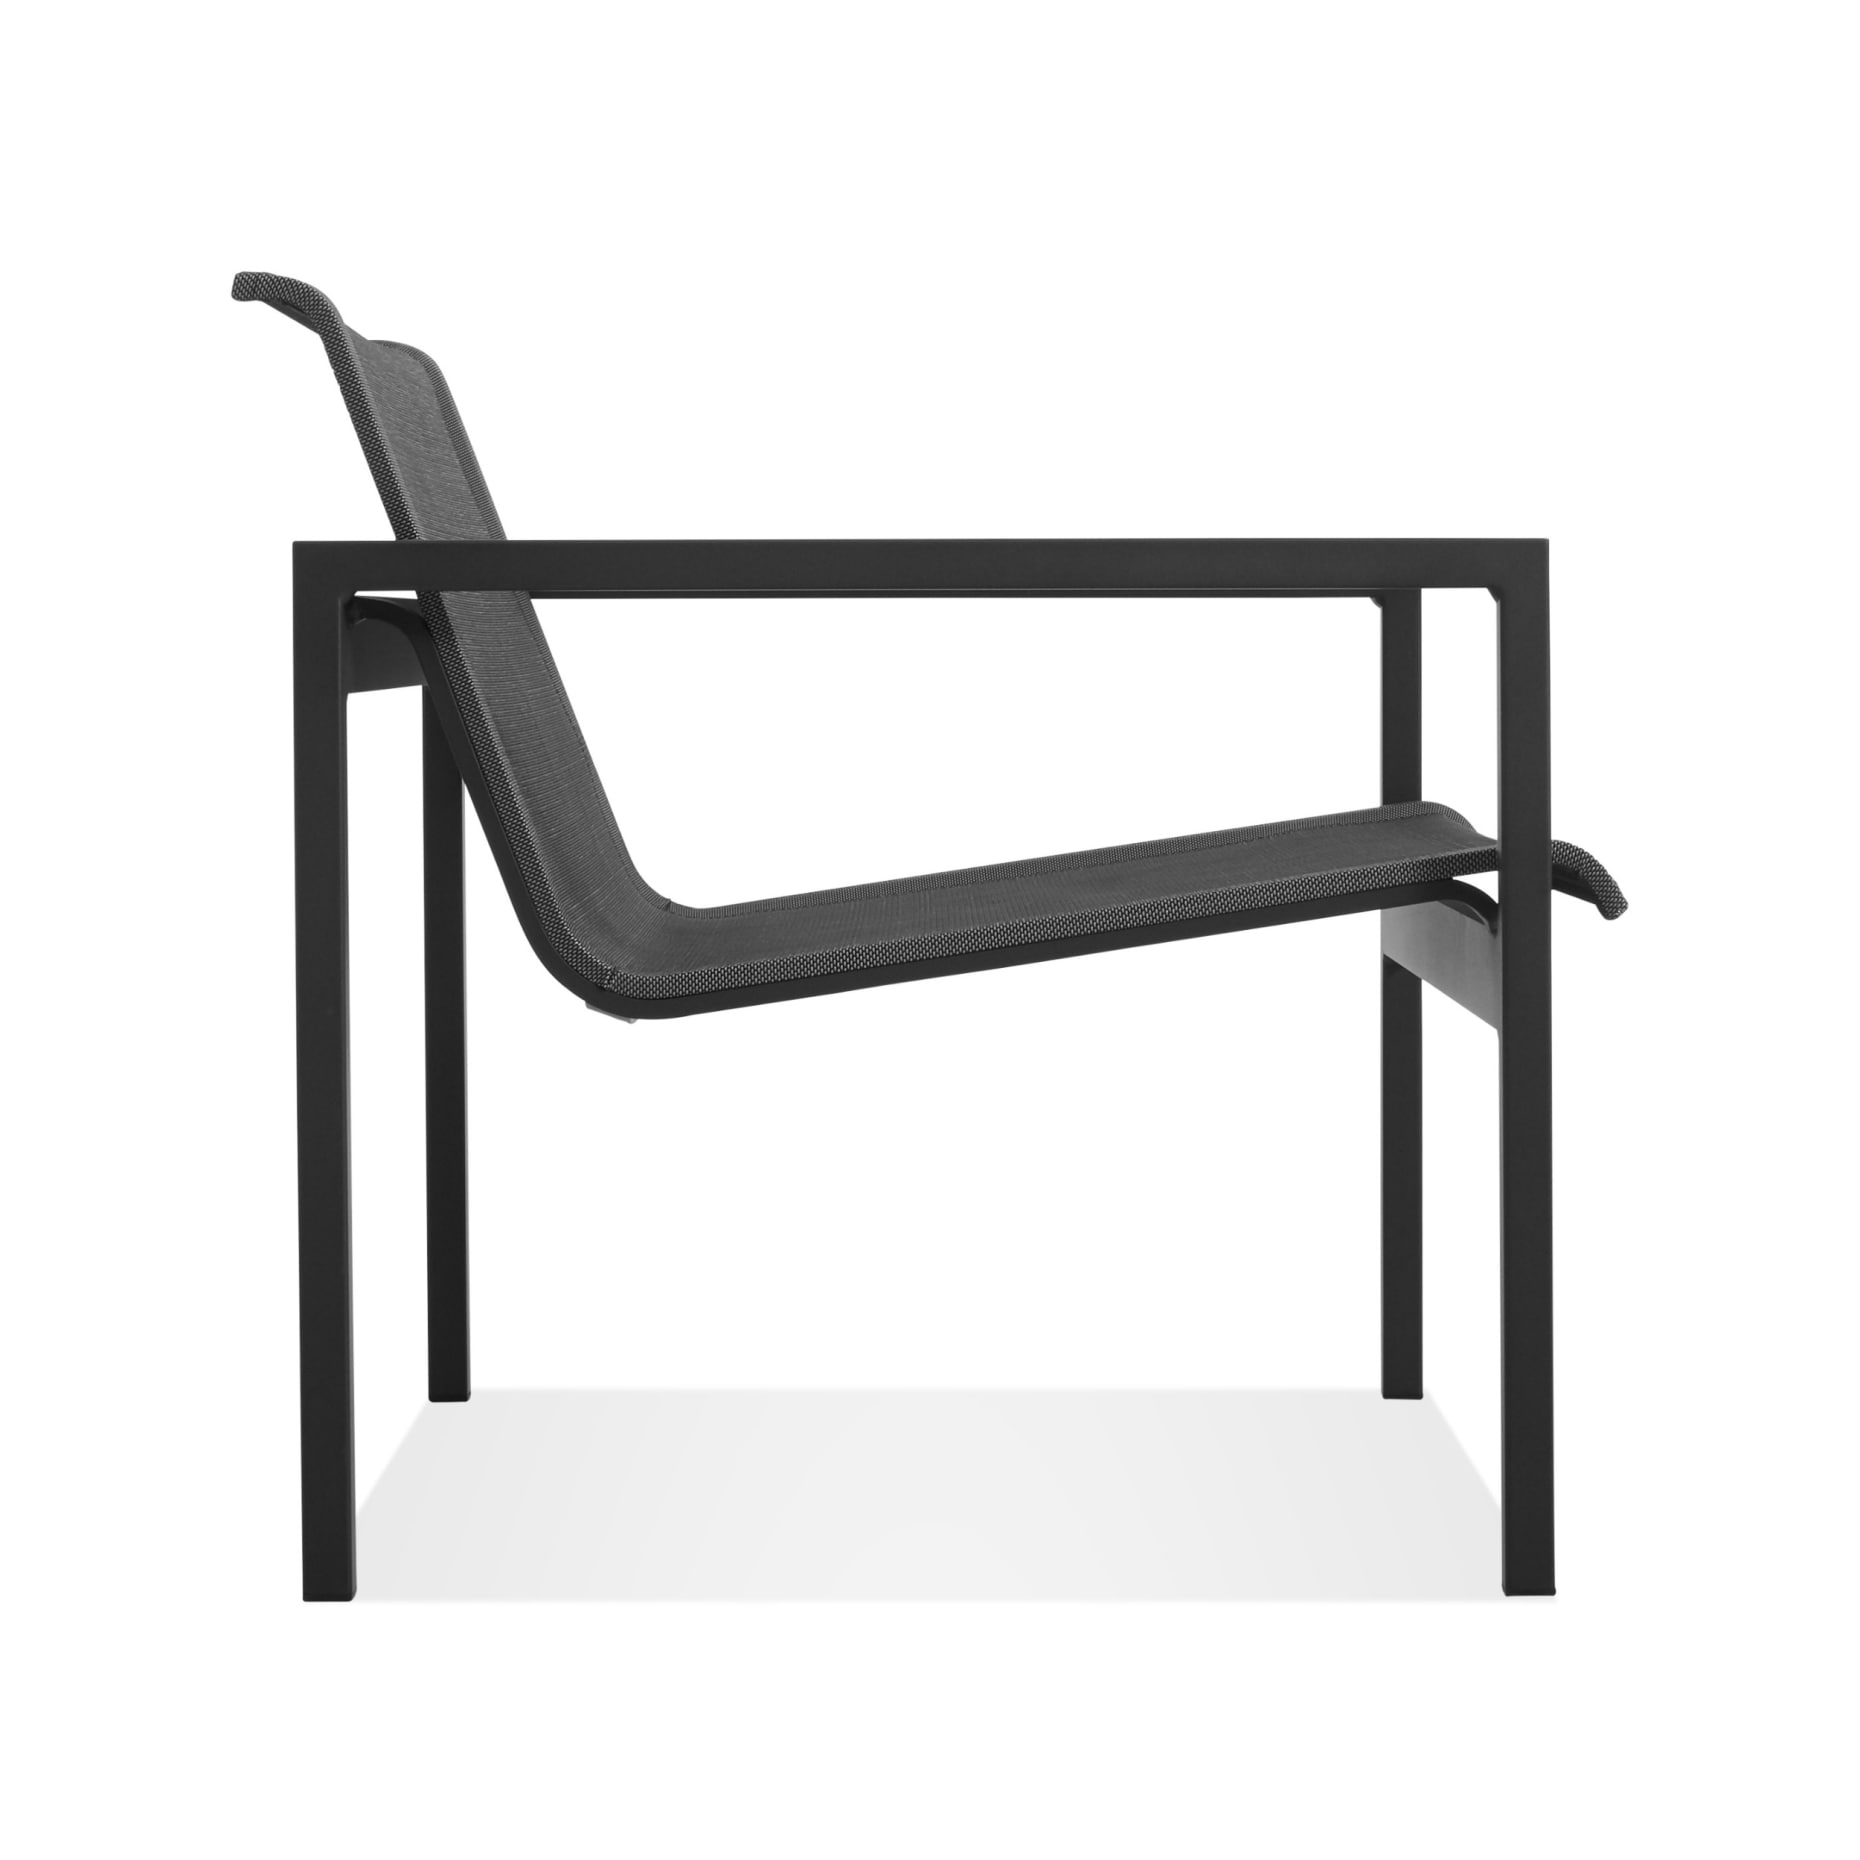 sk1 lngchr cb side skiff lounge chair carbon